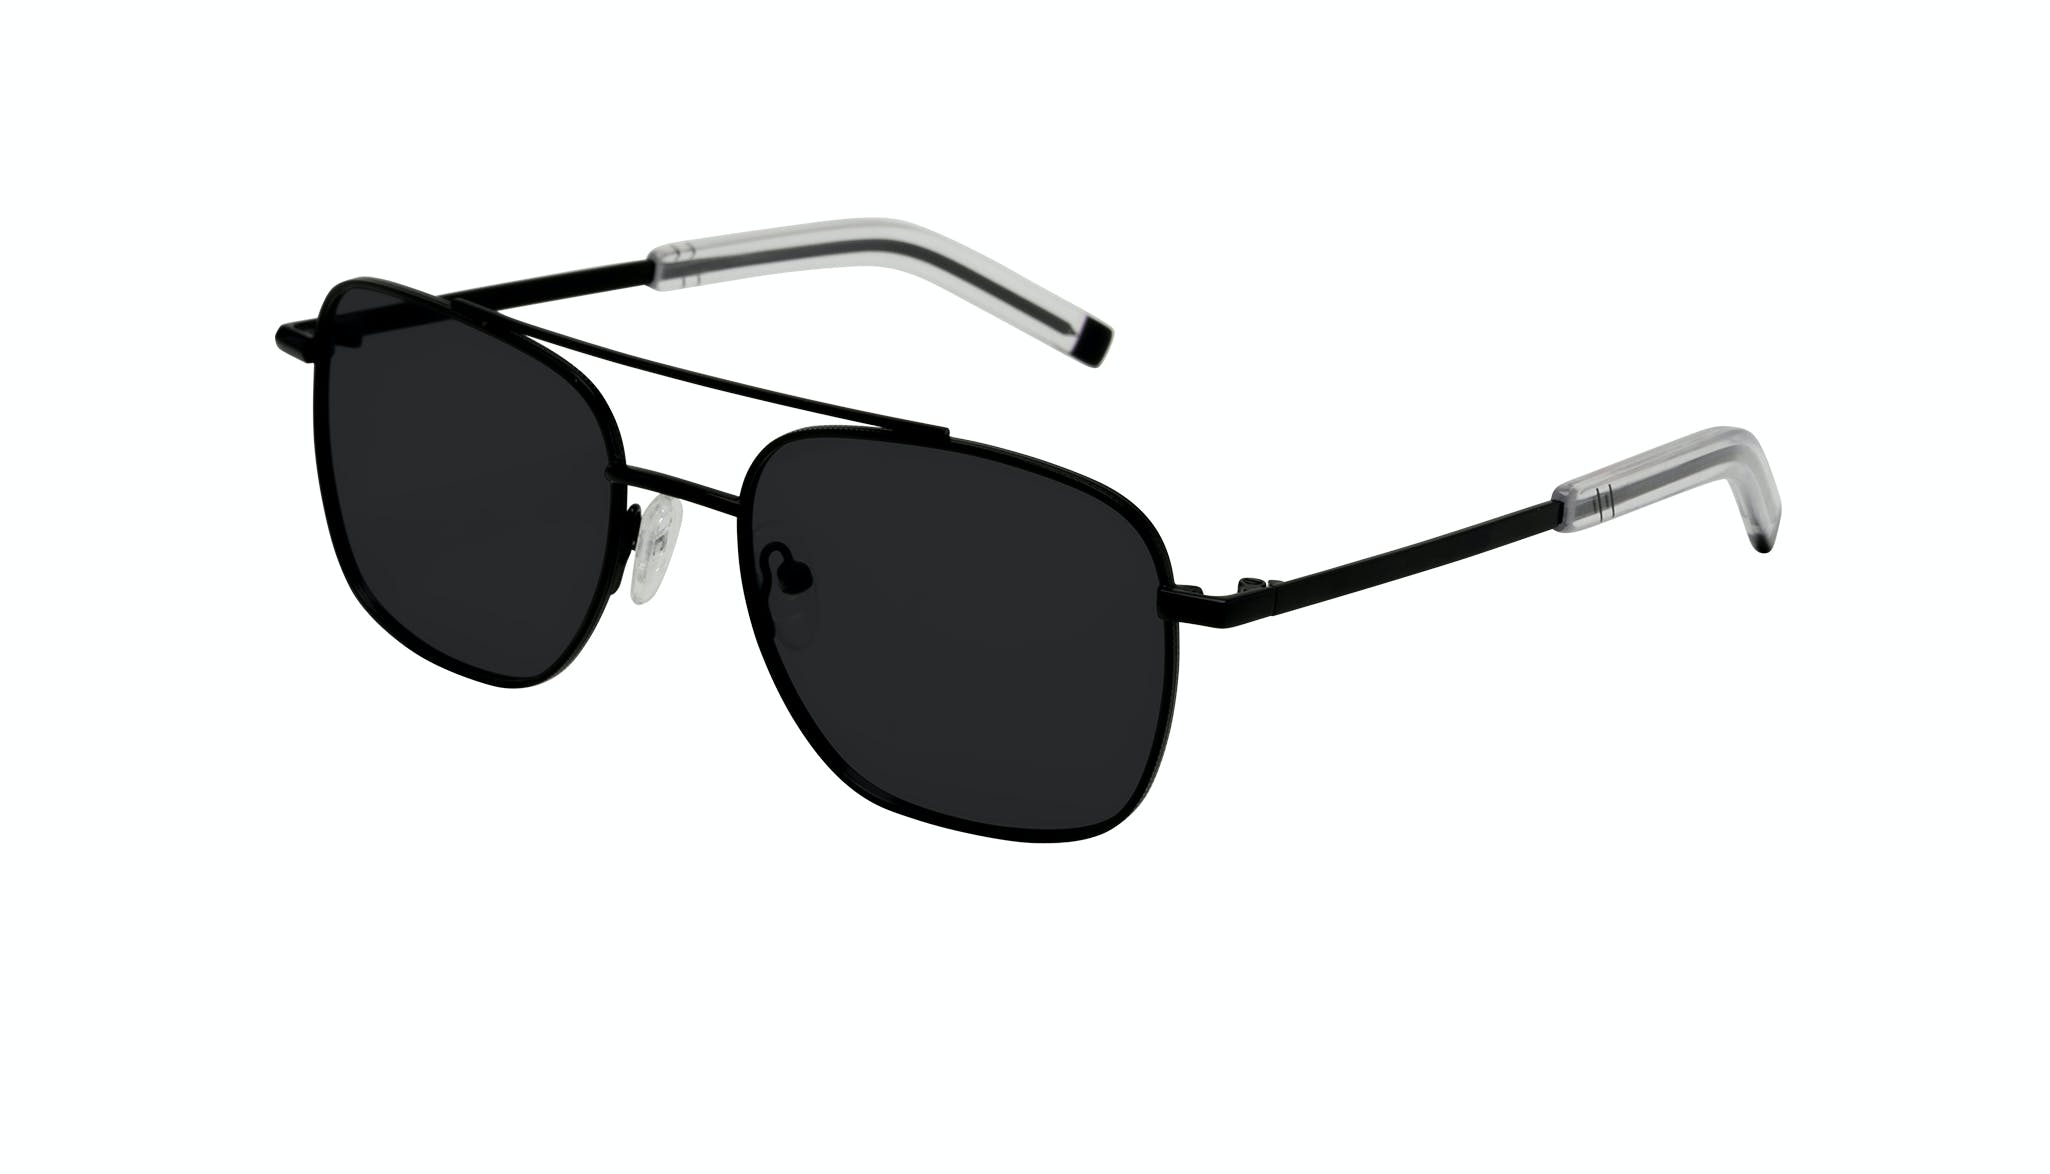 Affordable Fashion Glasses Aviator Sunglasses Men Drift Black Tilt